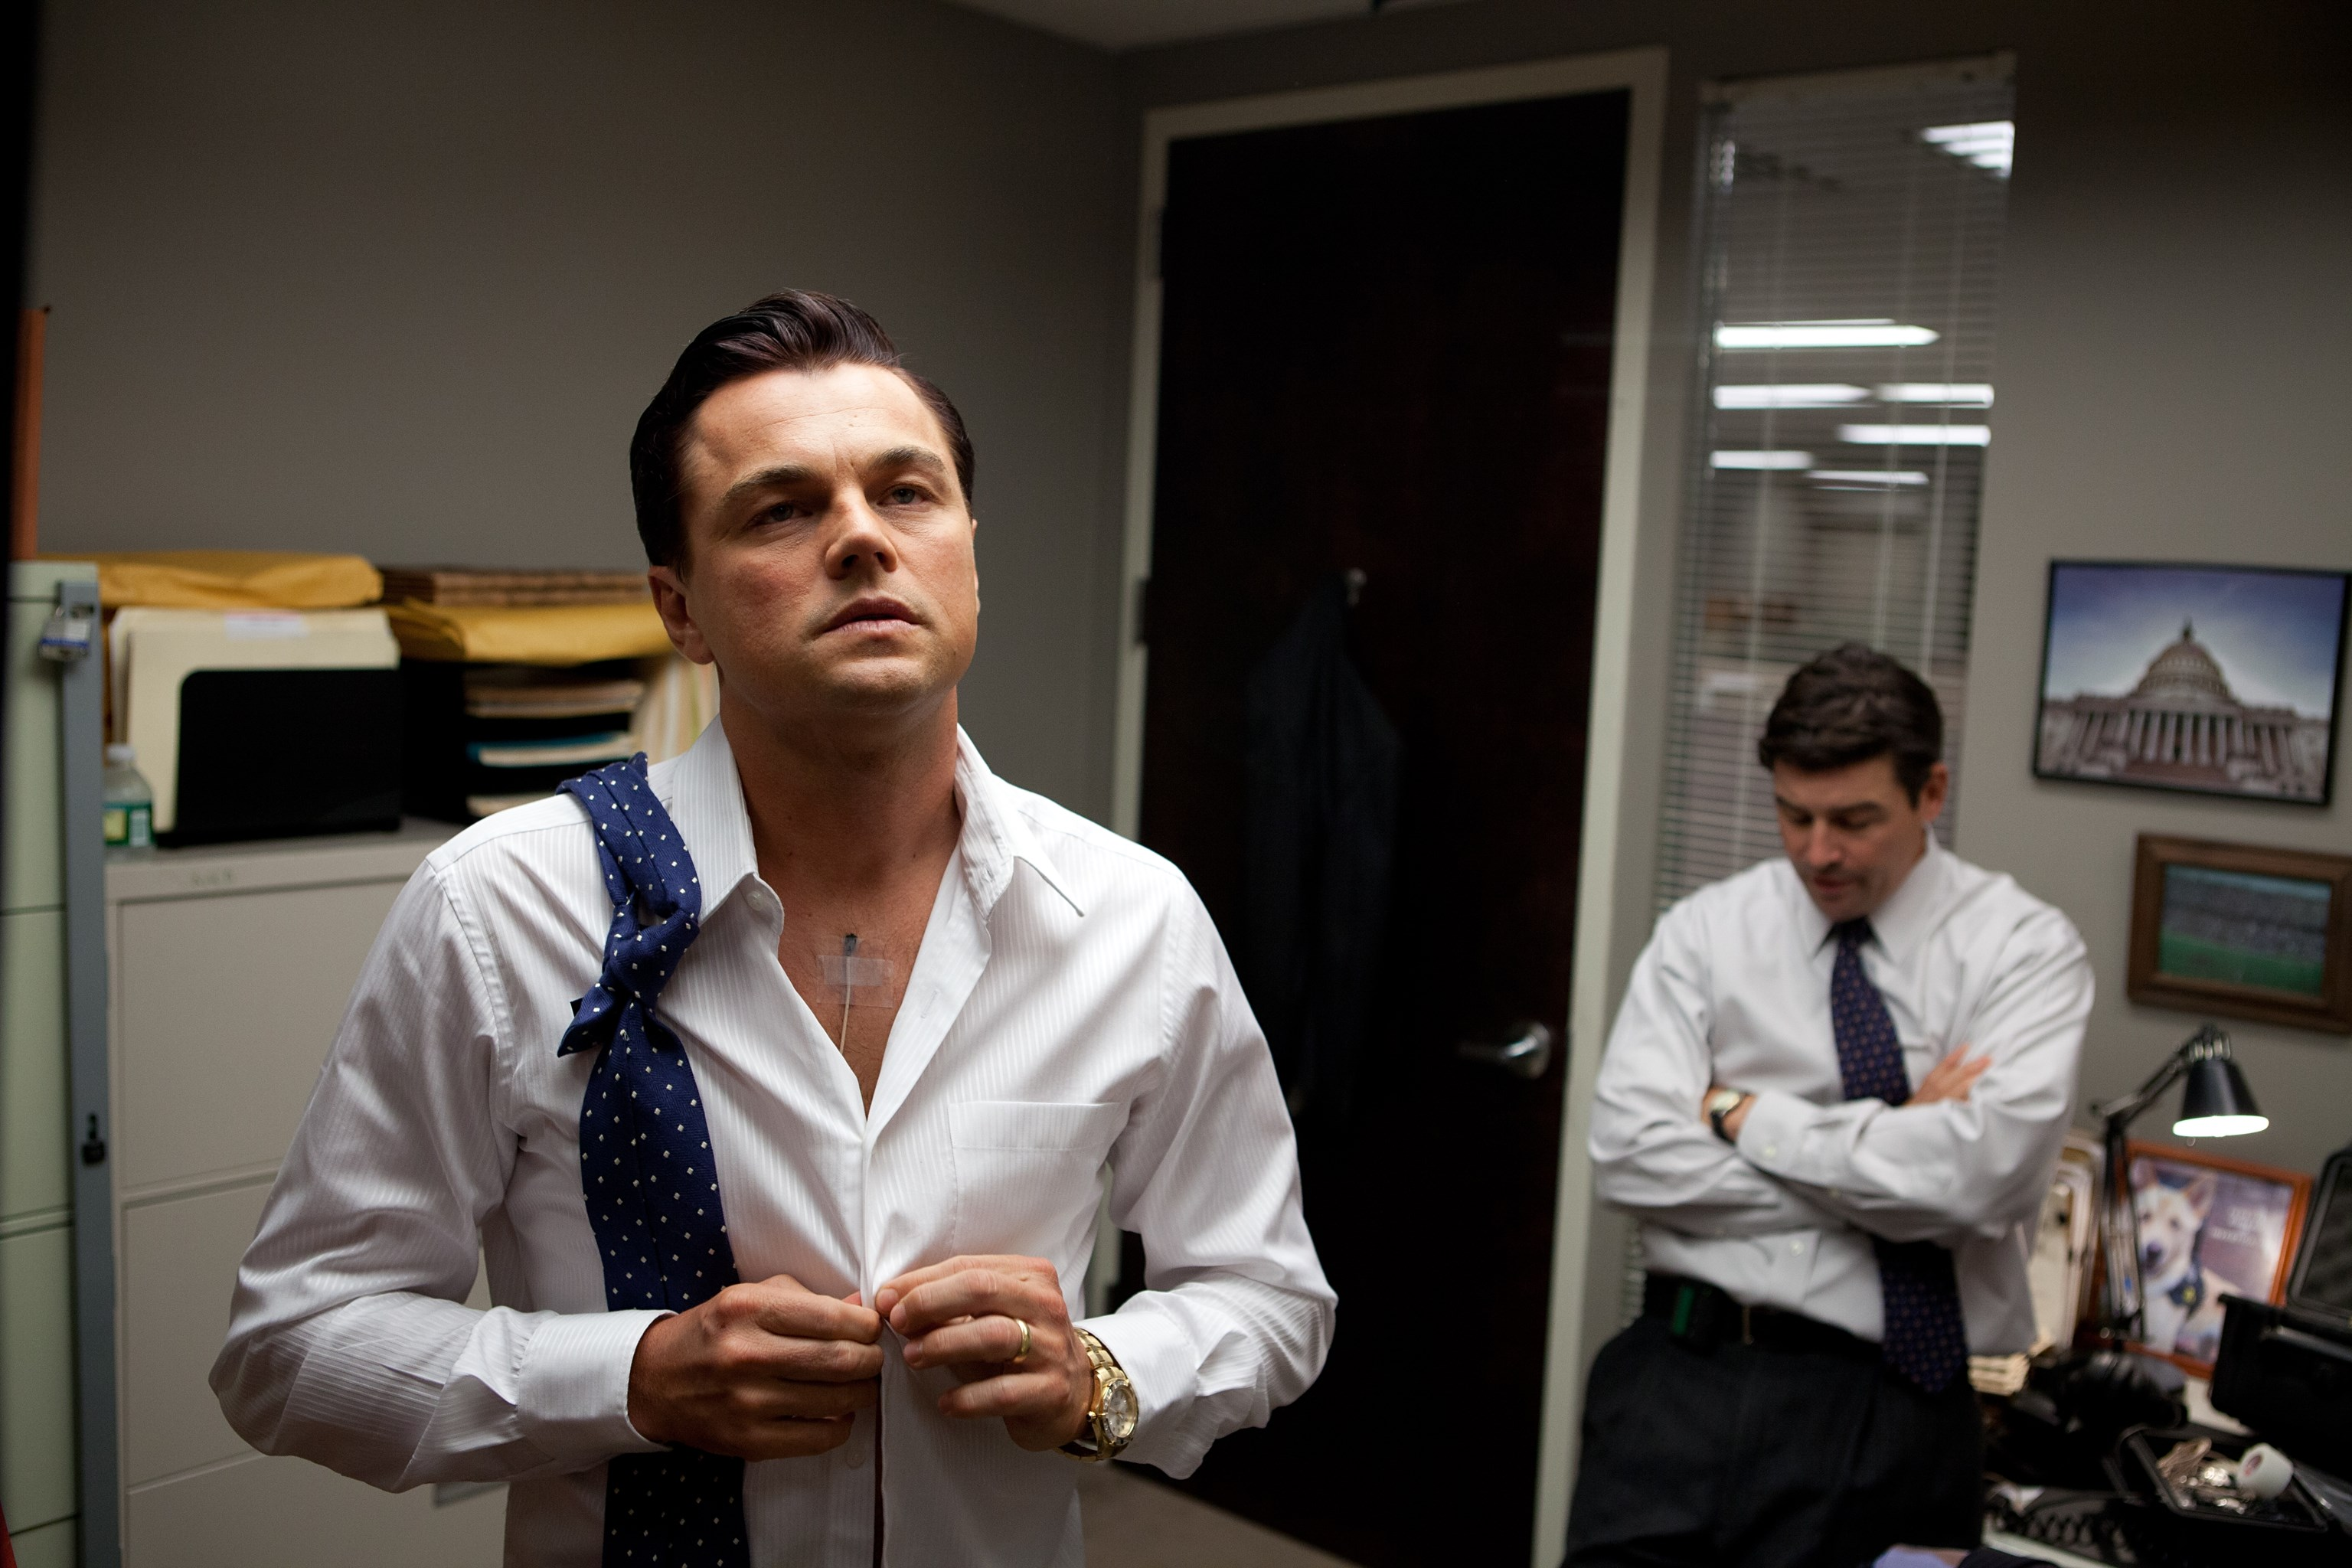 Wolf Of Wall Street High 200744 Hd Wallpaper Backgrounds